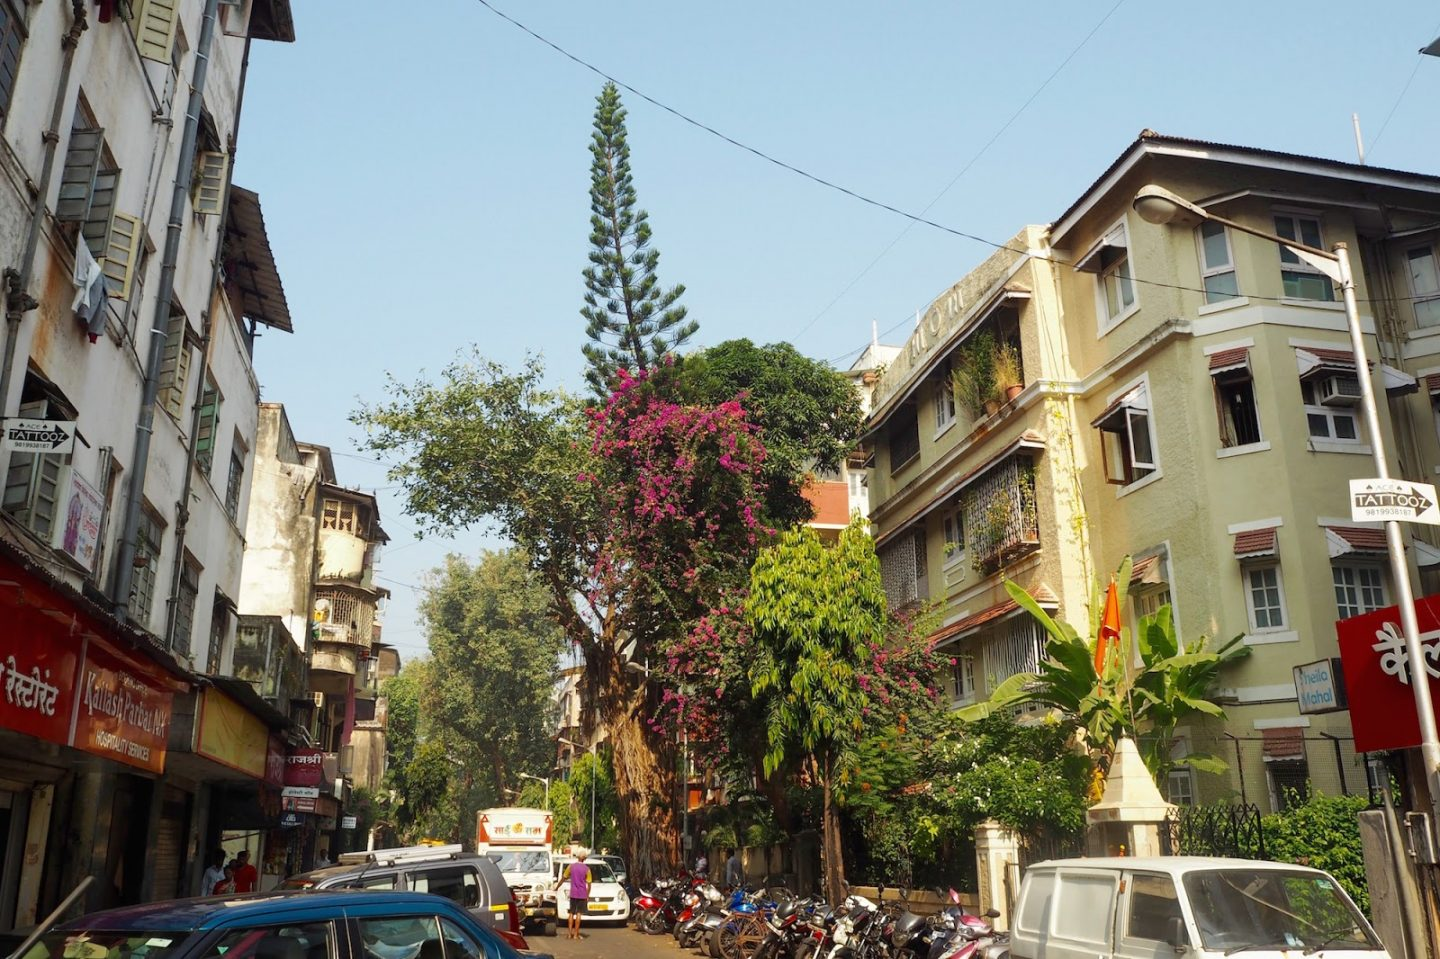 Beautiful plant life taking over the streets of Mumbai